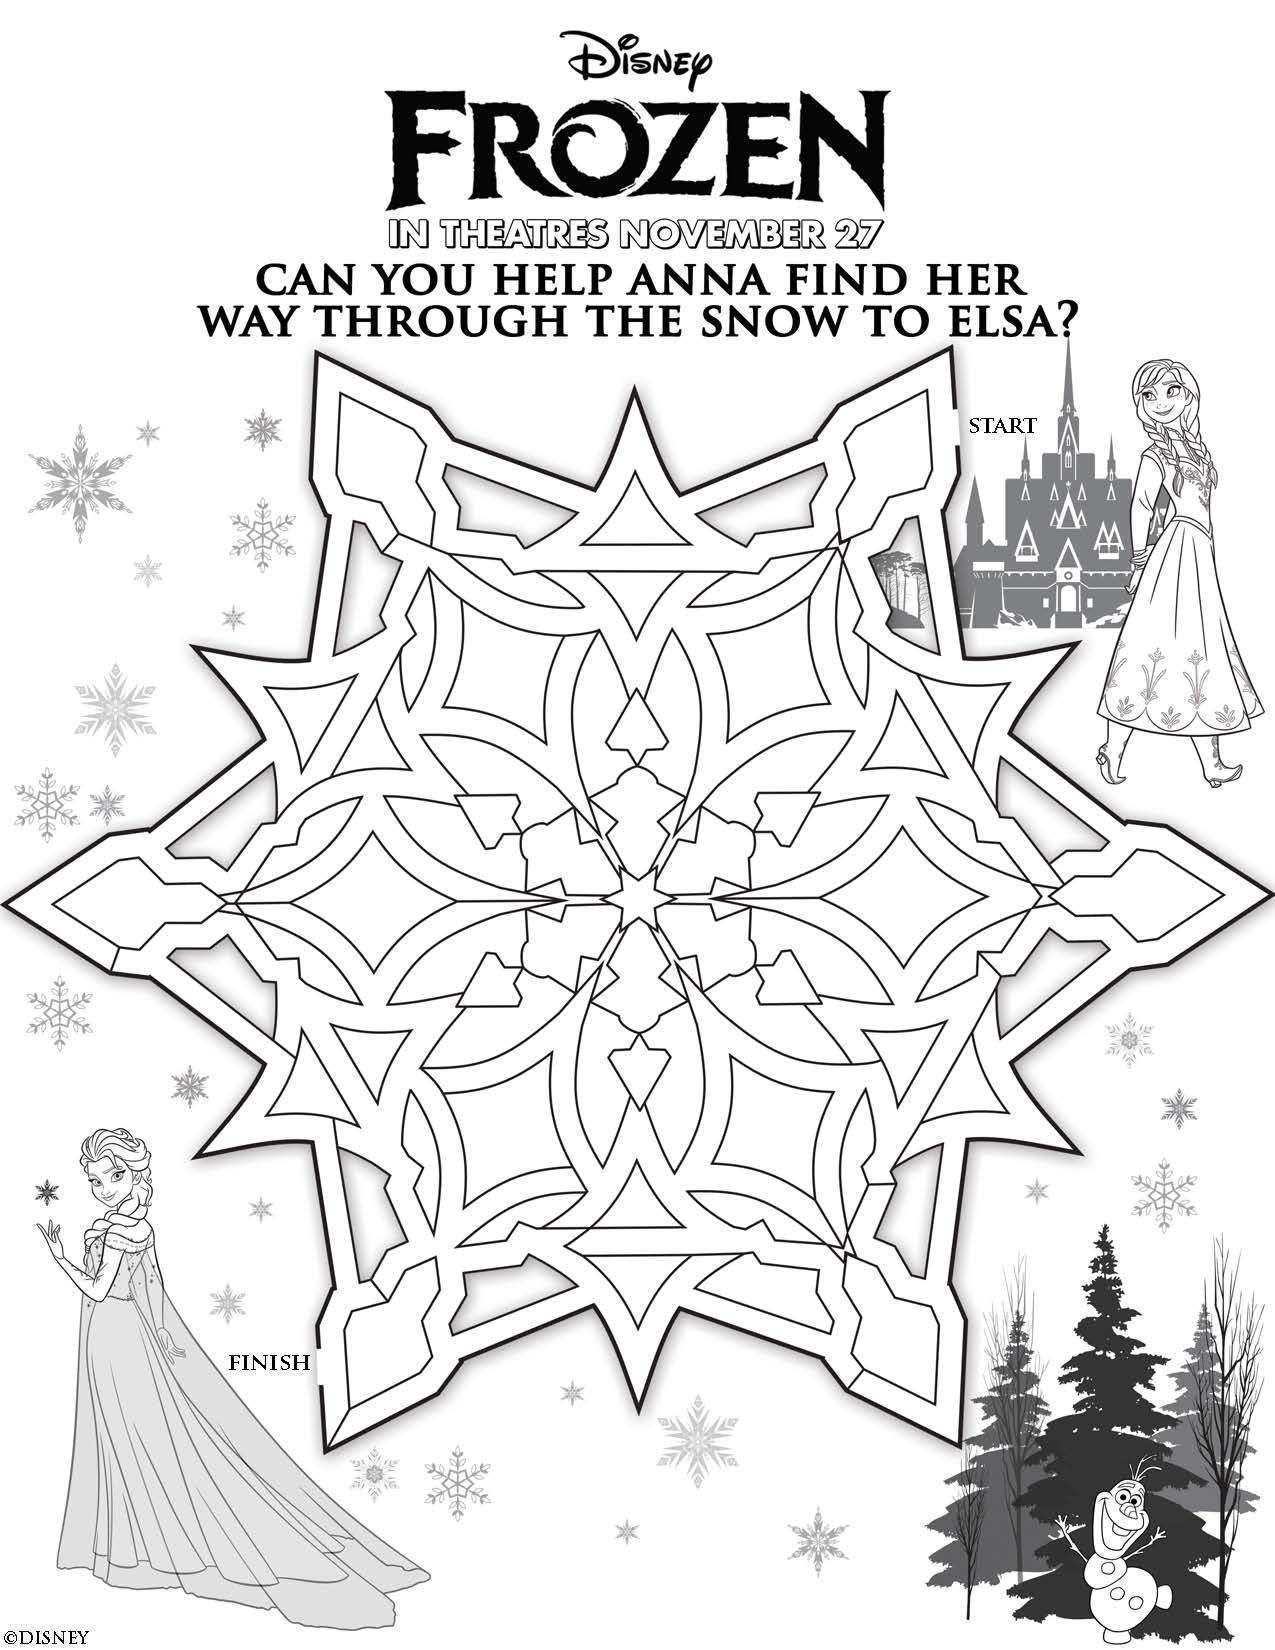 photo relating to Frozen Printable Coloring Pages identify Disneys Frozen Printables, Coloring Internet pages, and Storybook